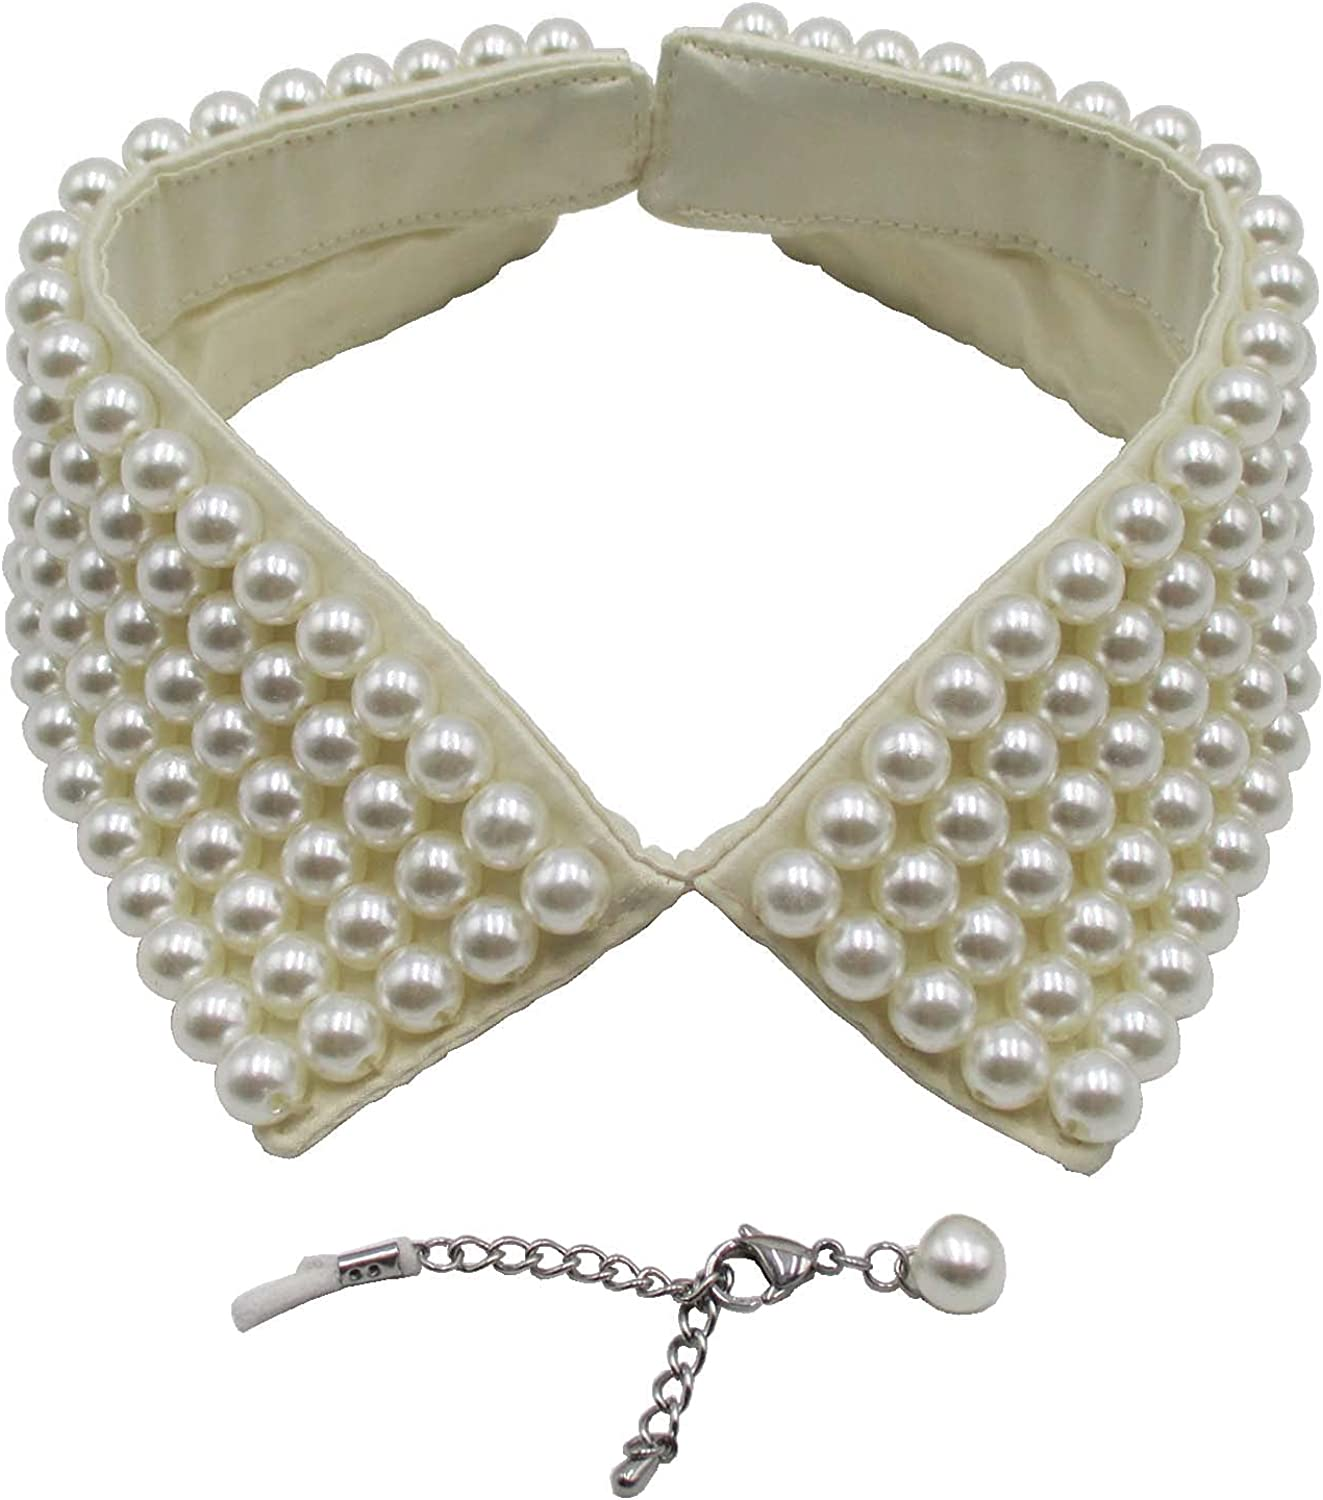 Trimscraft Collar Necklace Simulated Pearl Detachable False Collar Choker Clothing Accessory for Women